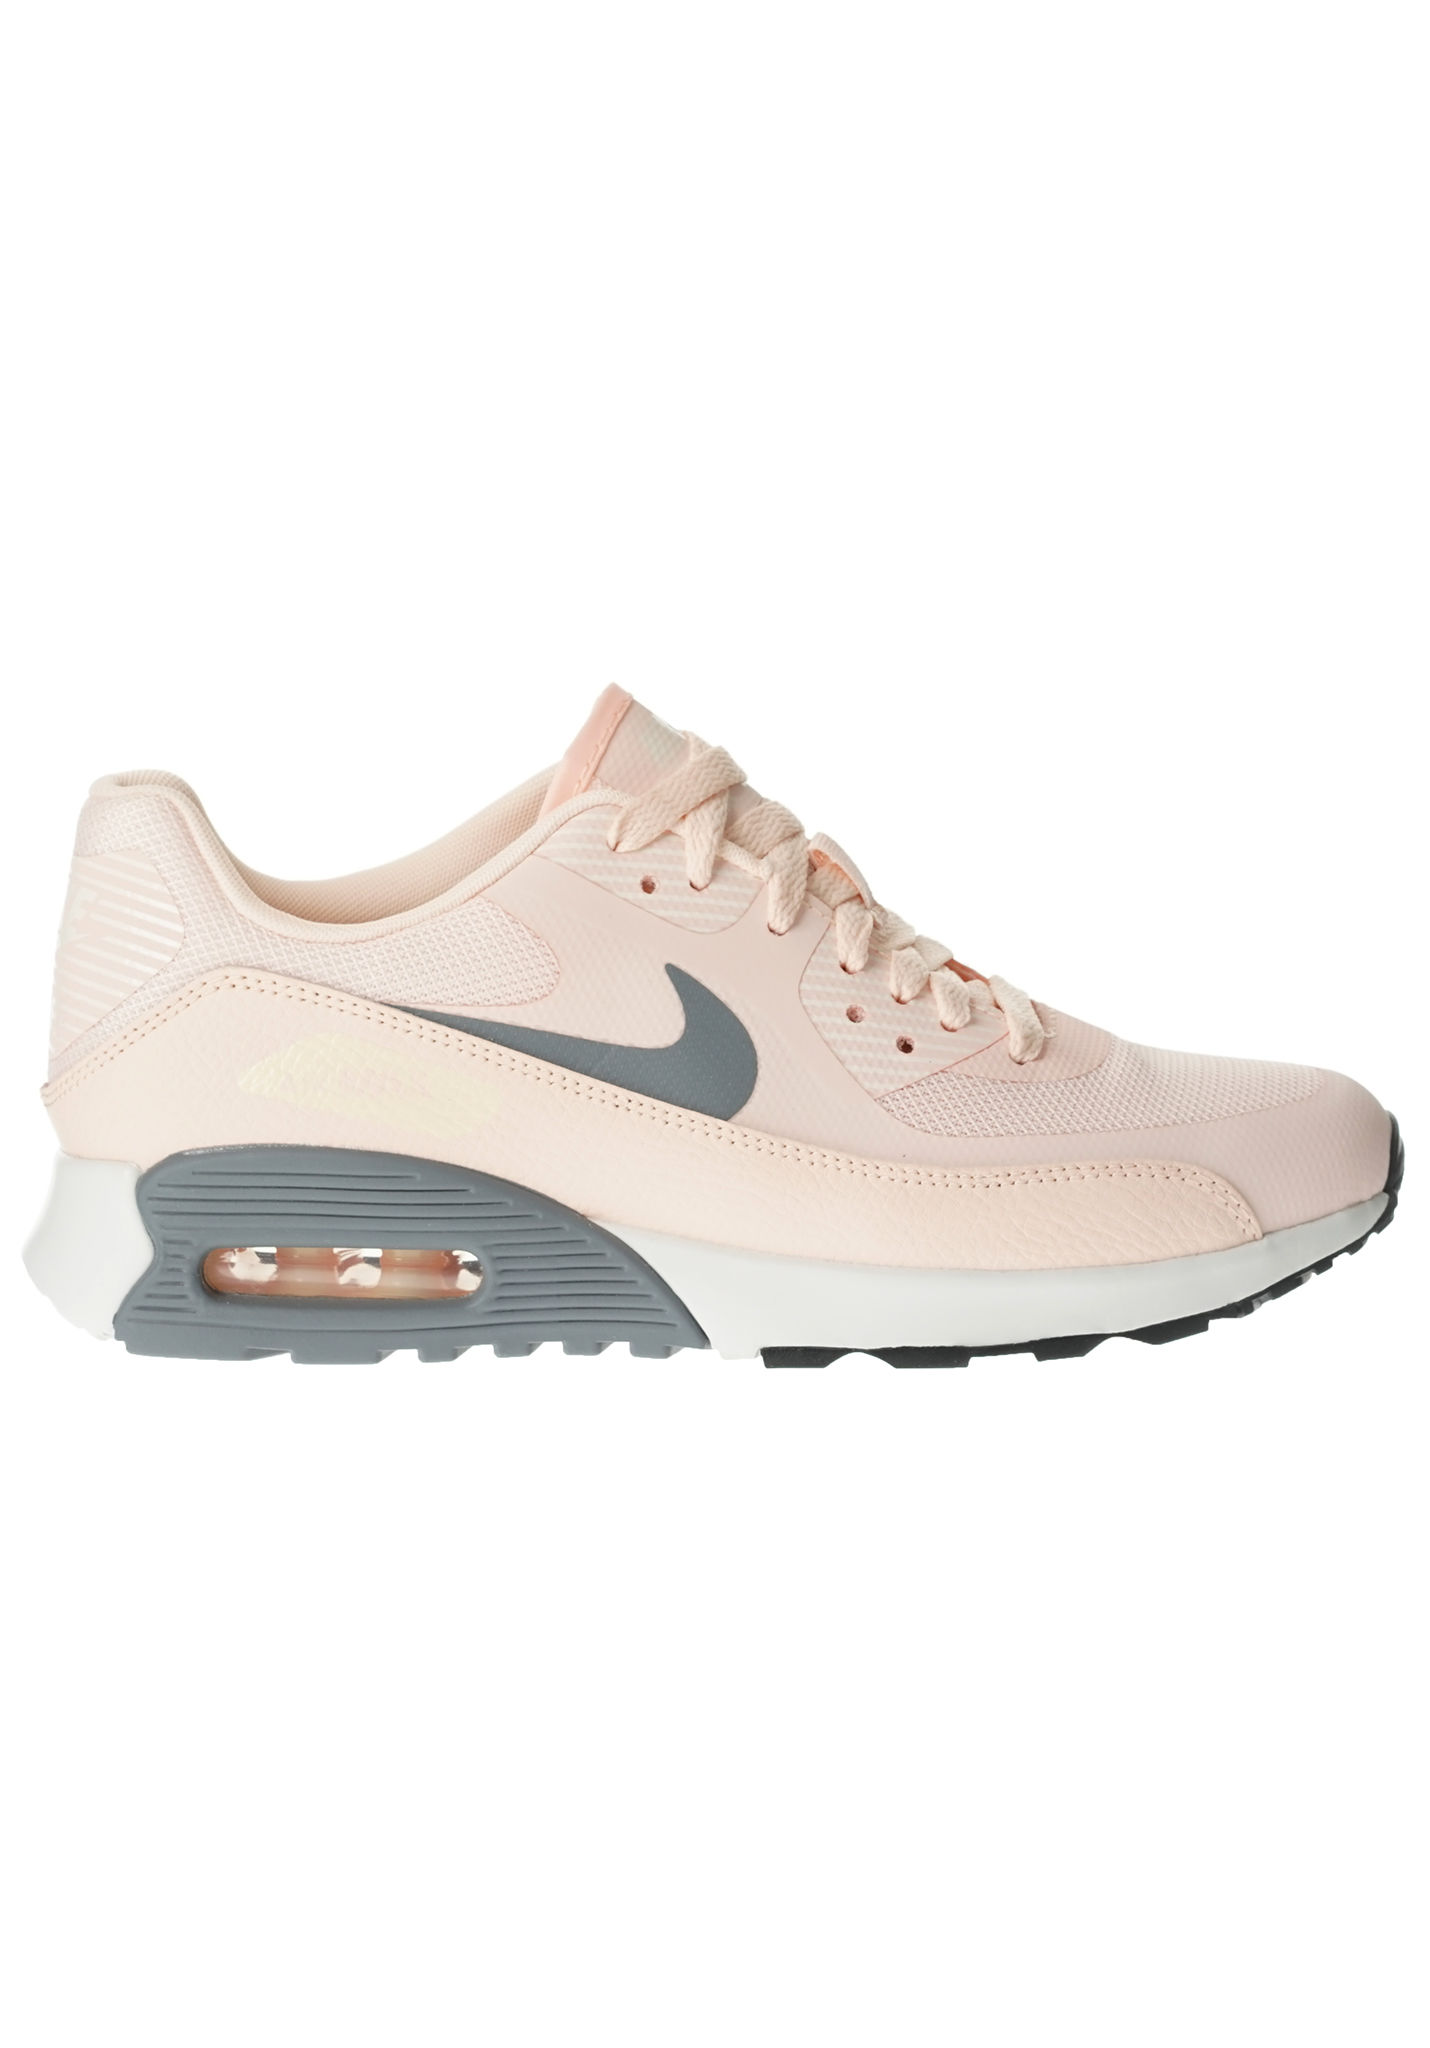 Elucidación seguramente simplemente  air max rosa Online Shopping for Women, Men, Kids Fashion & Lifestyle|Free  Delivery & Returns